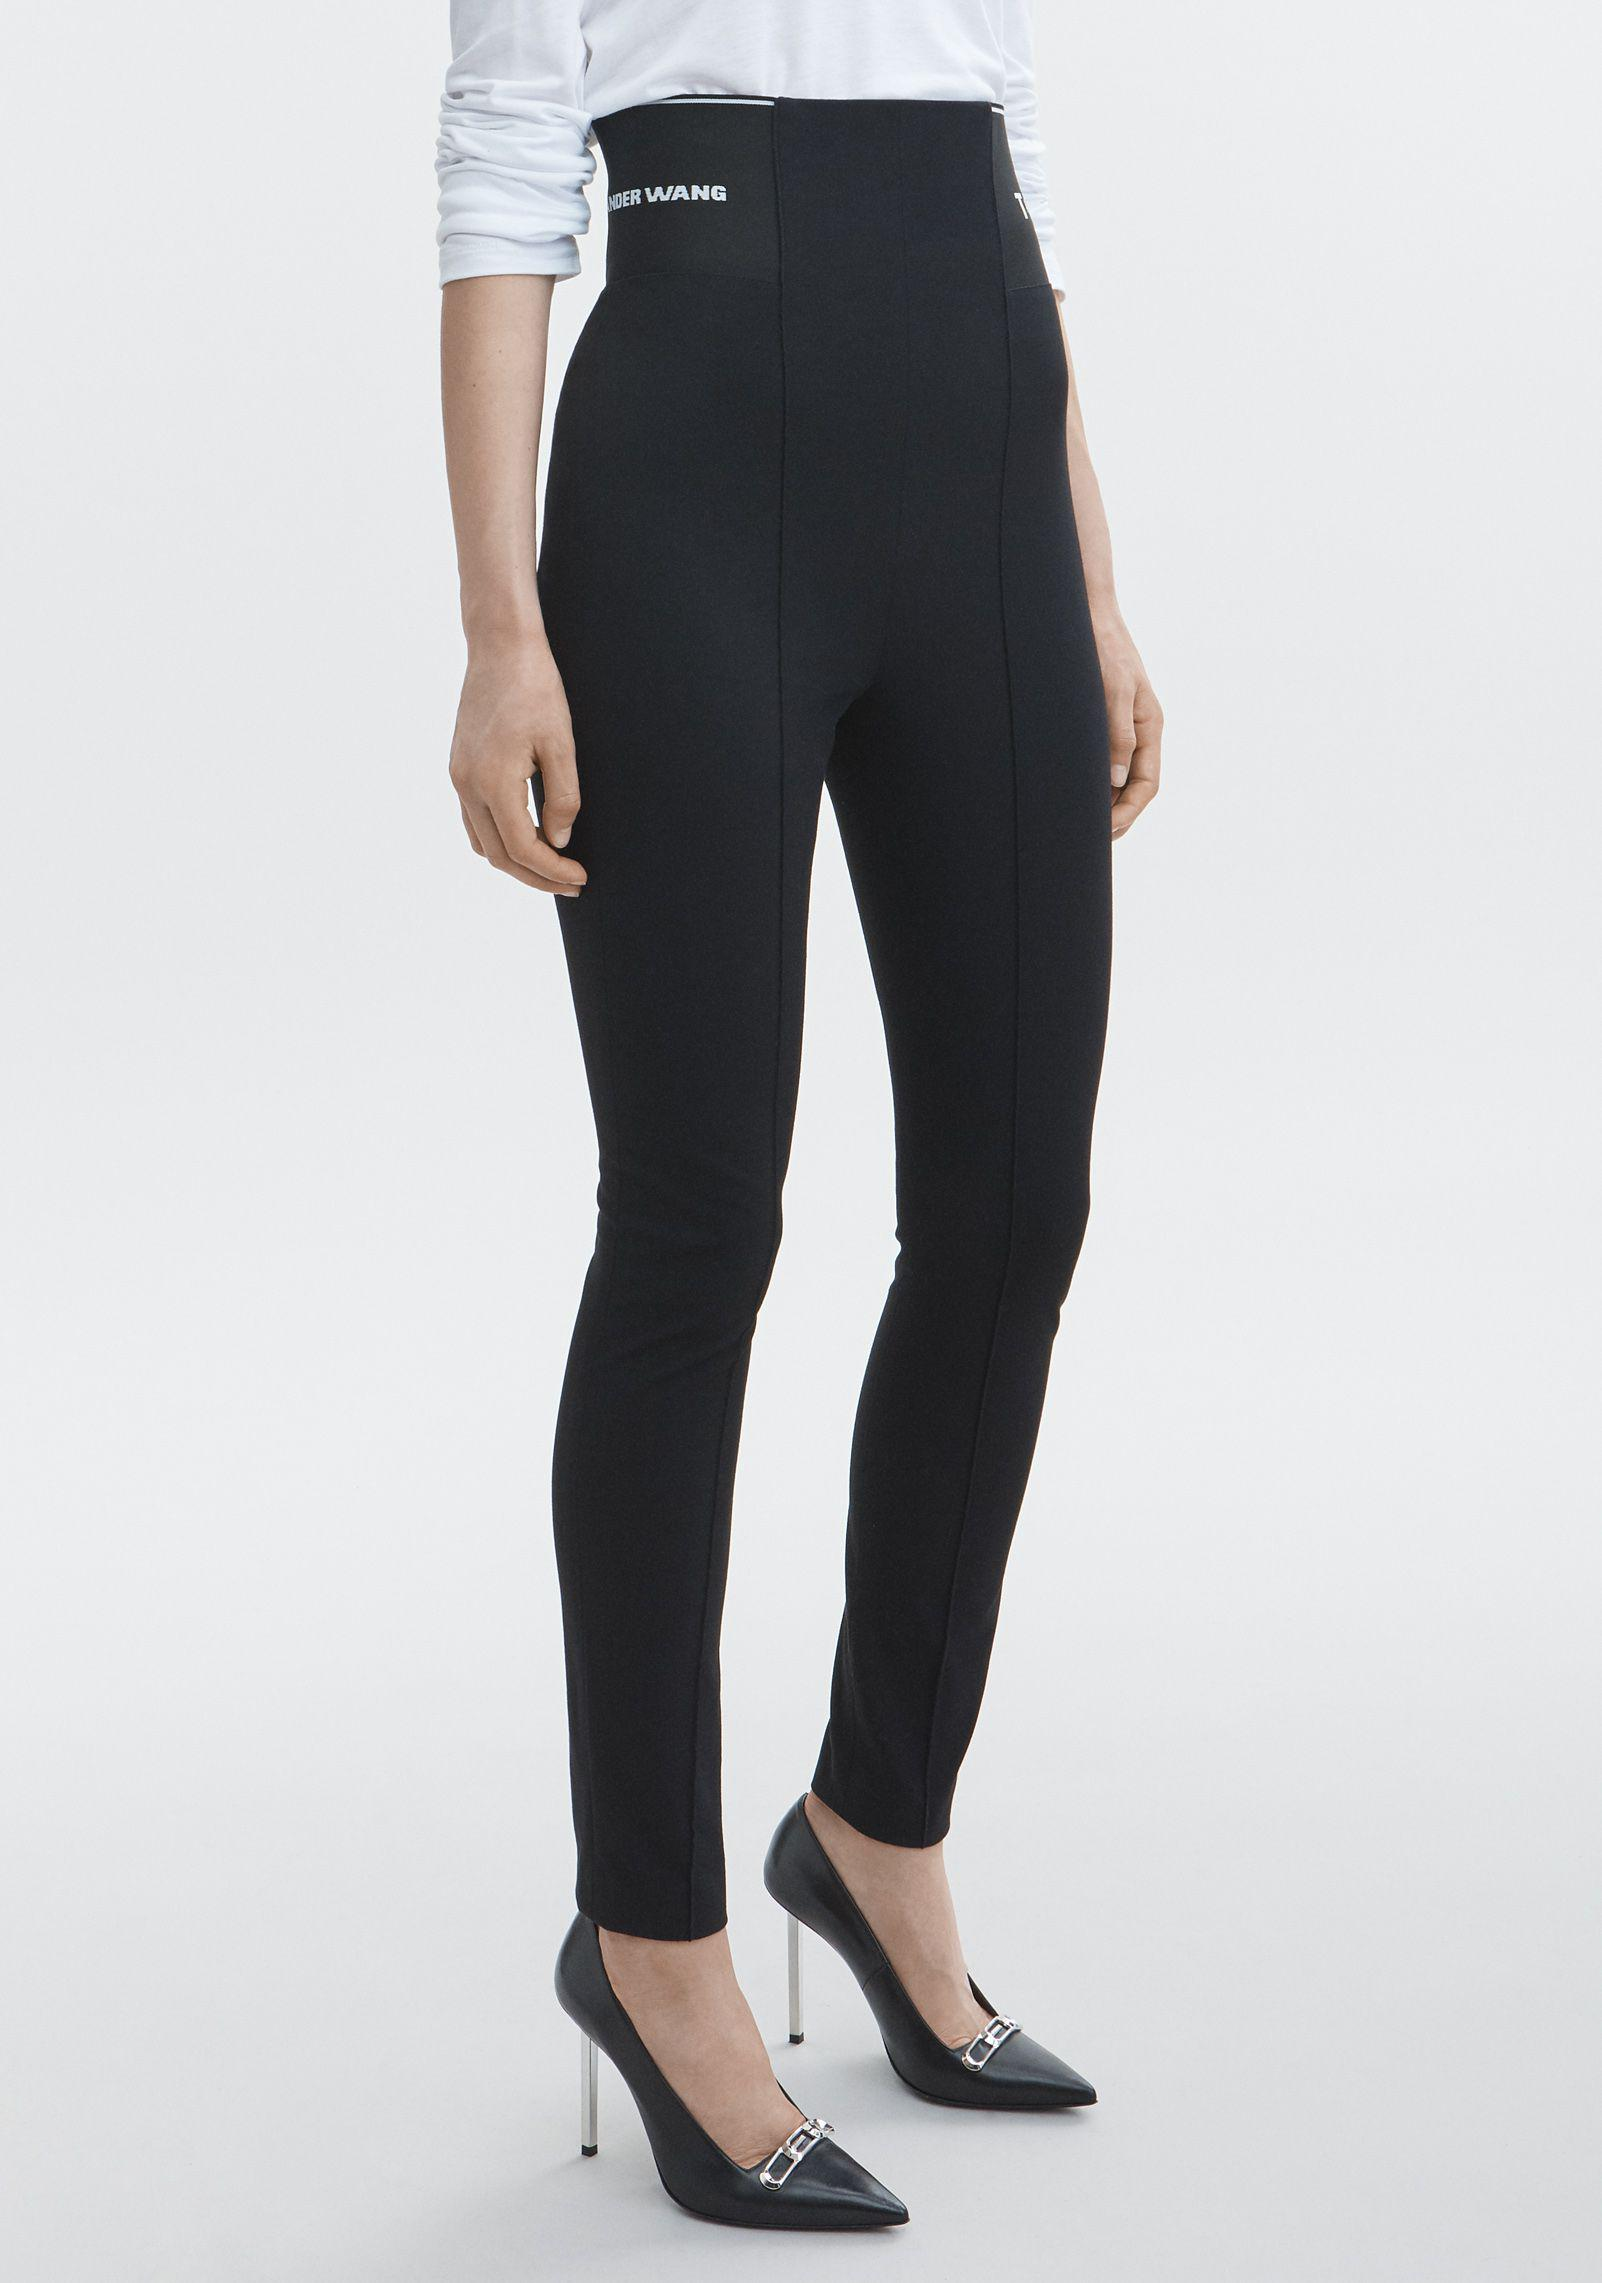 885a4e96d6 t-by-alexander-wang-Black-LEGGING-With-Logo-Elastic.jpeg